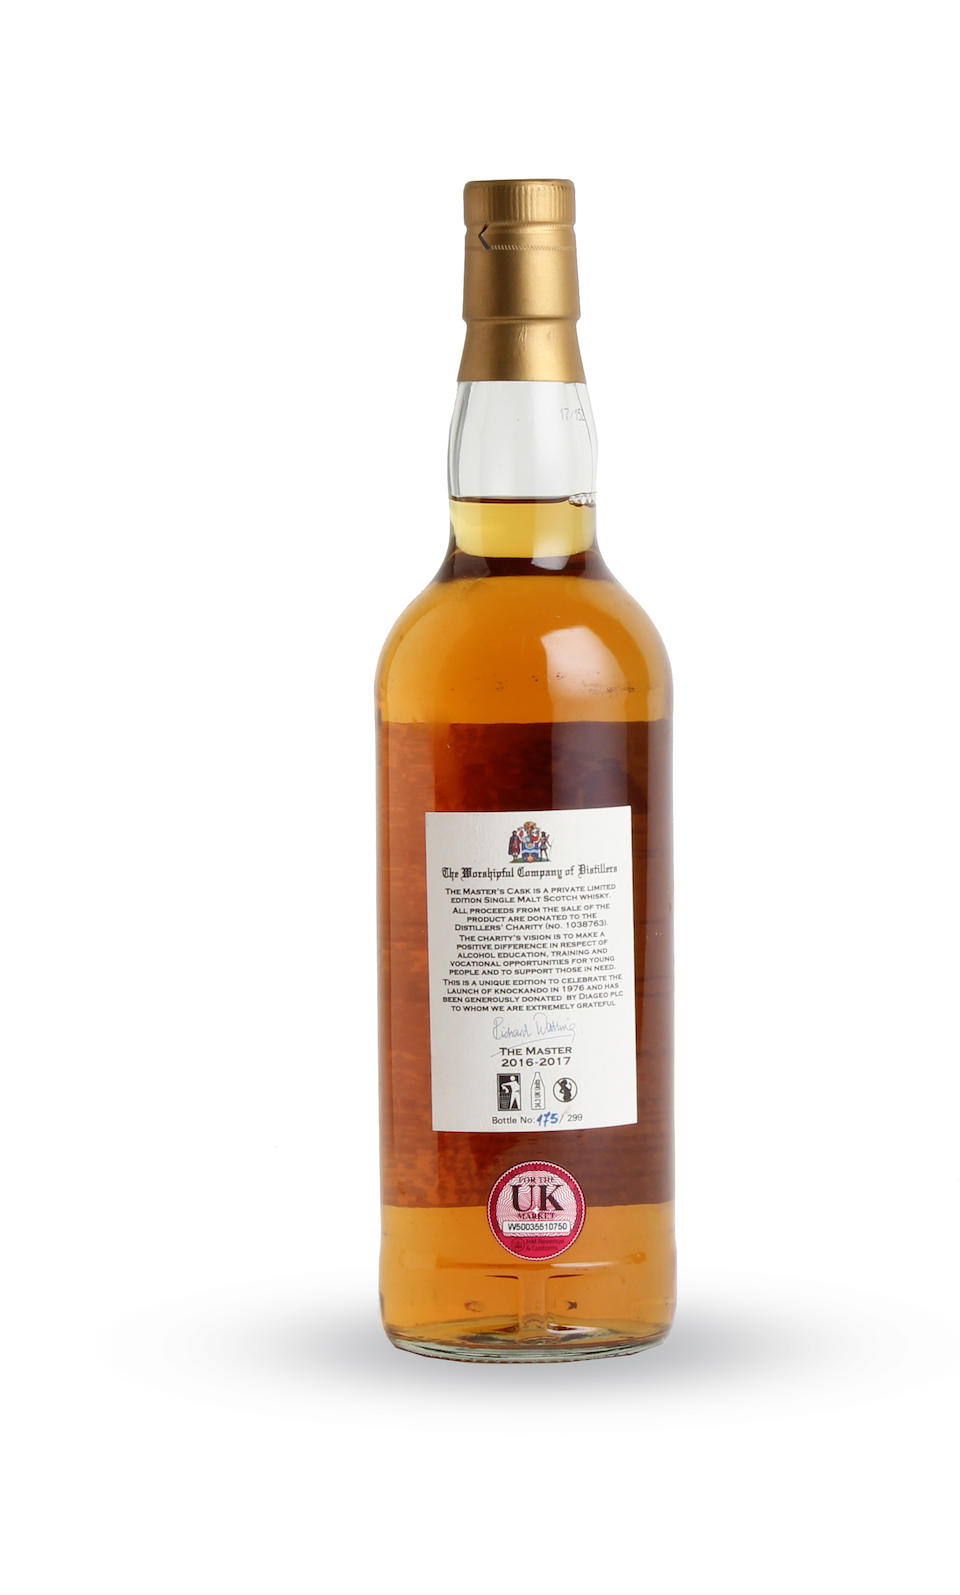 Glenfiddich Foundation Reserve-1993 Knockando The Masters Cask-18 year old